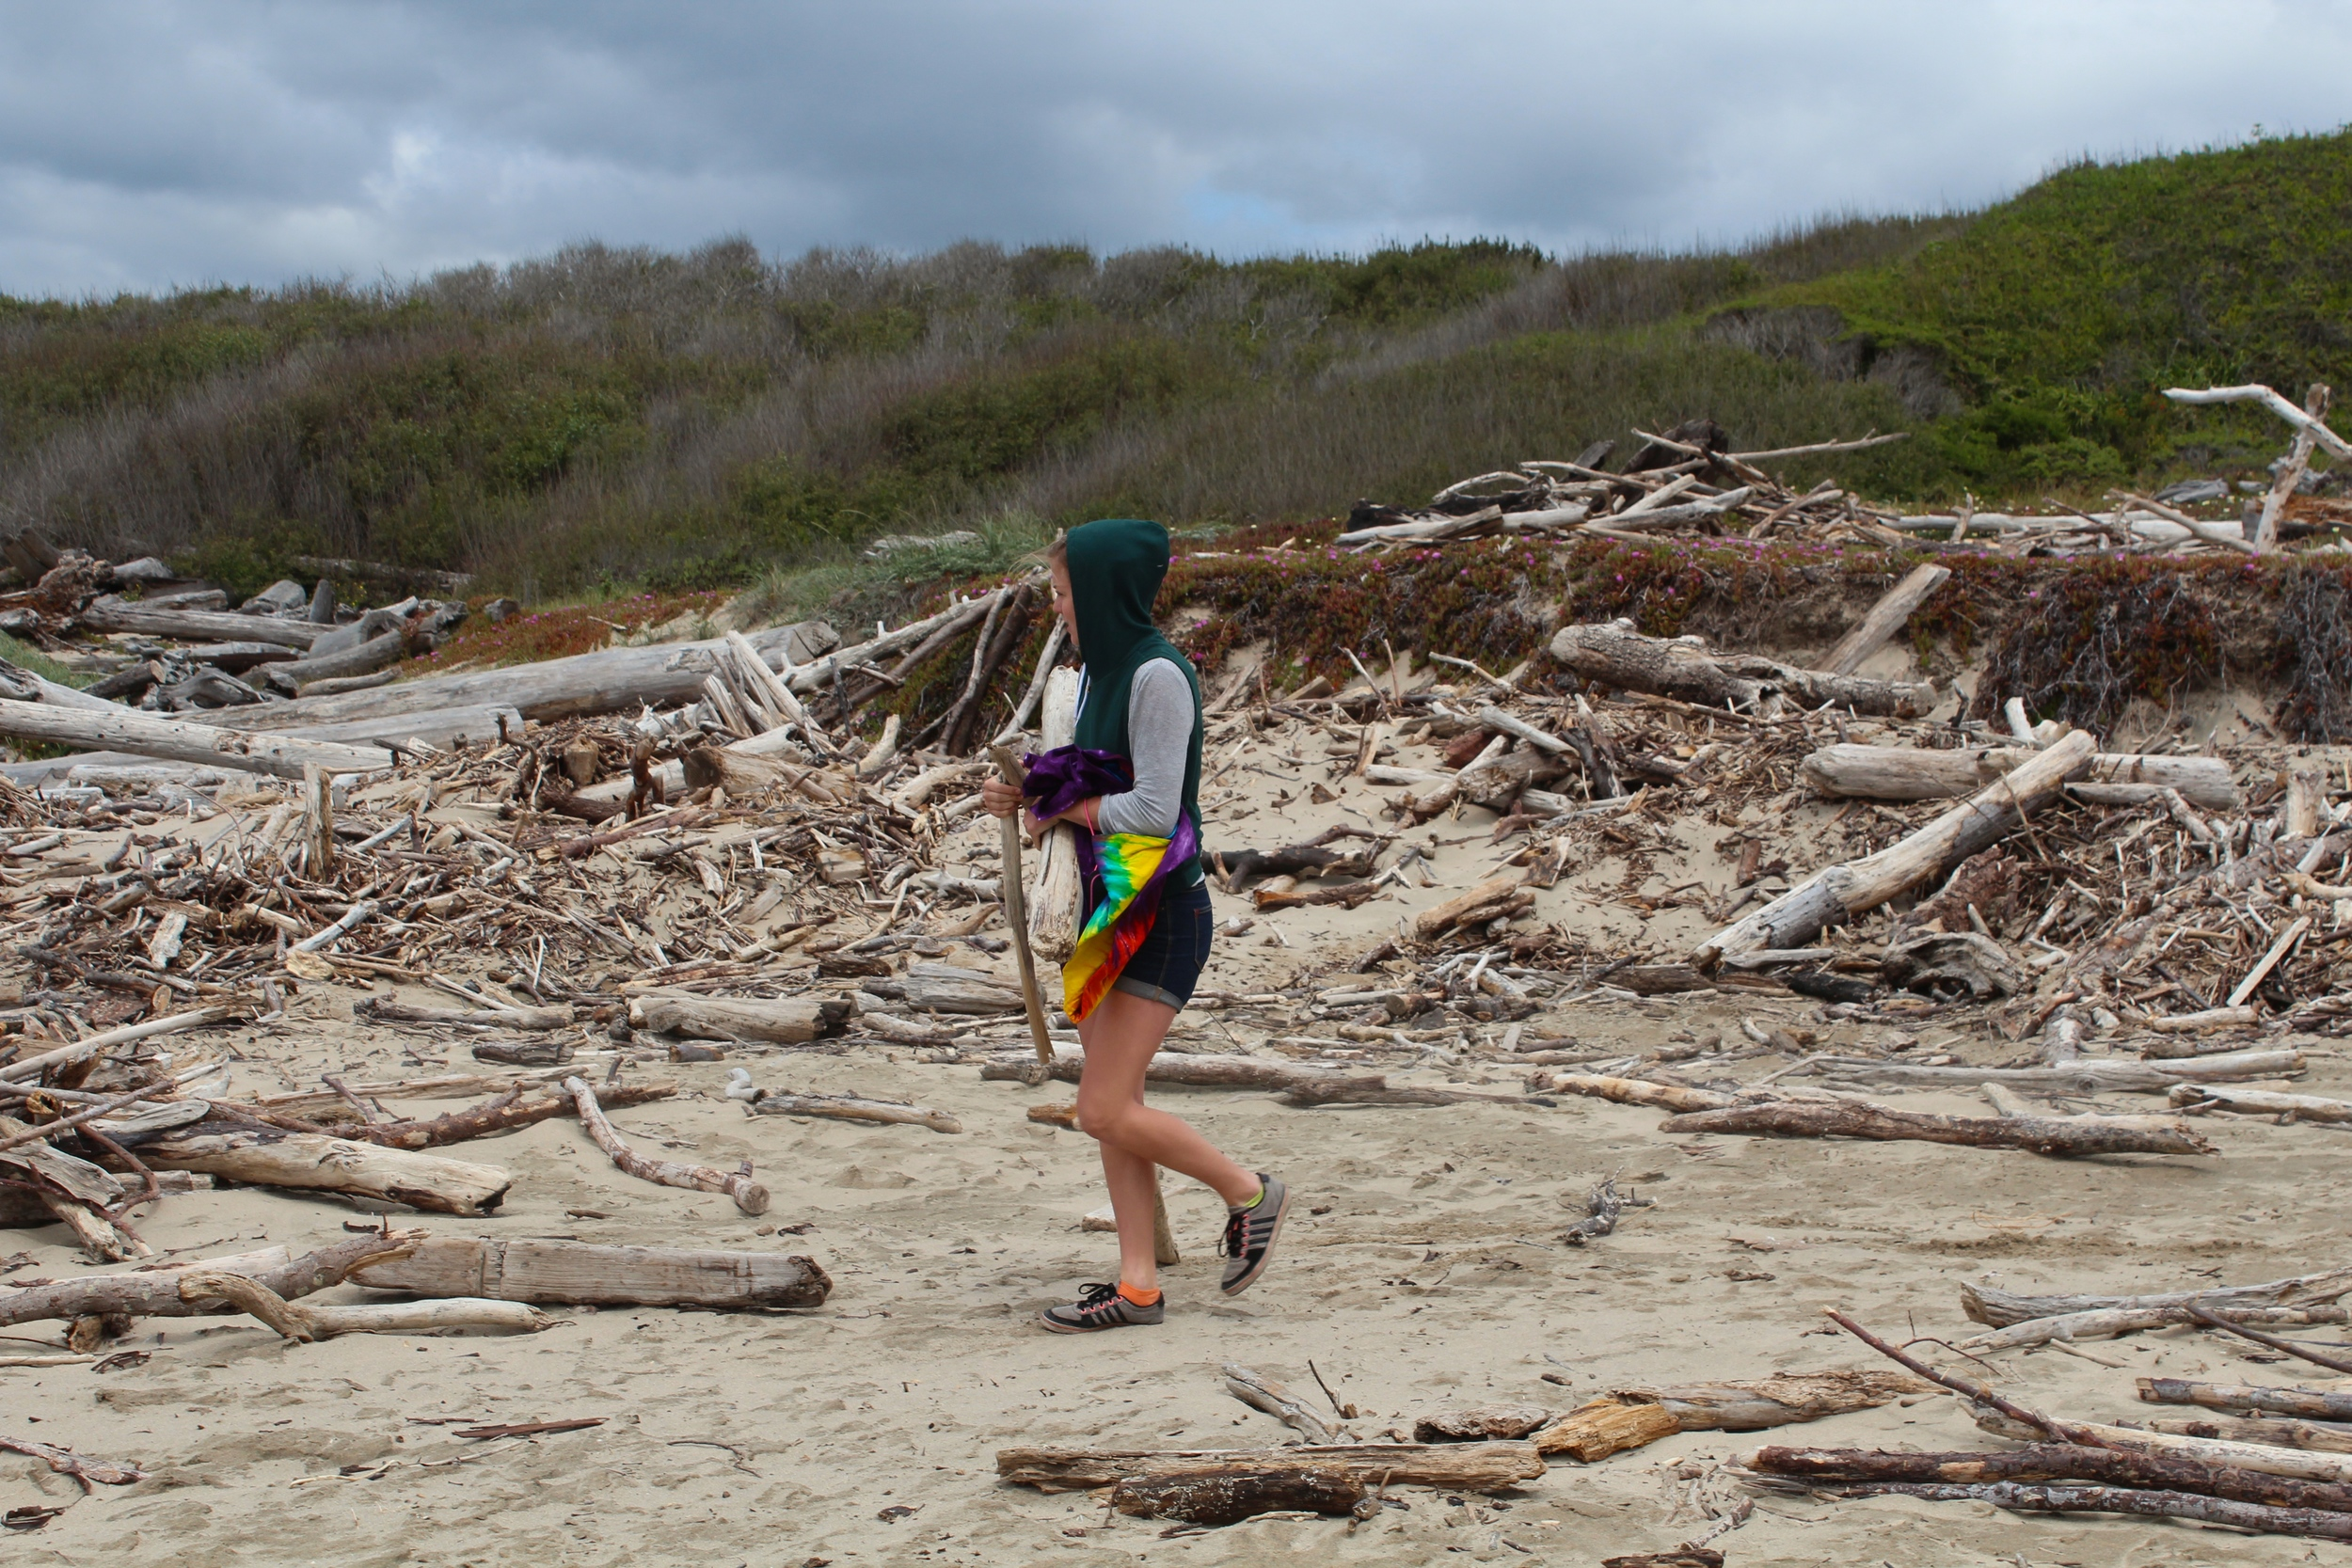 Collecting driftwood.